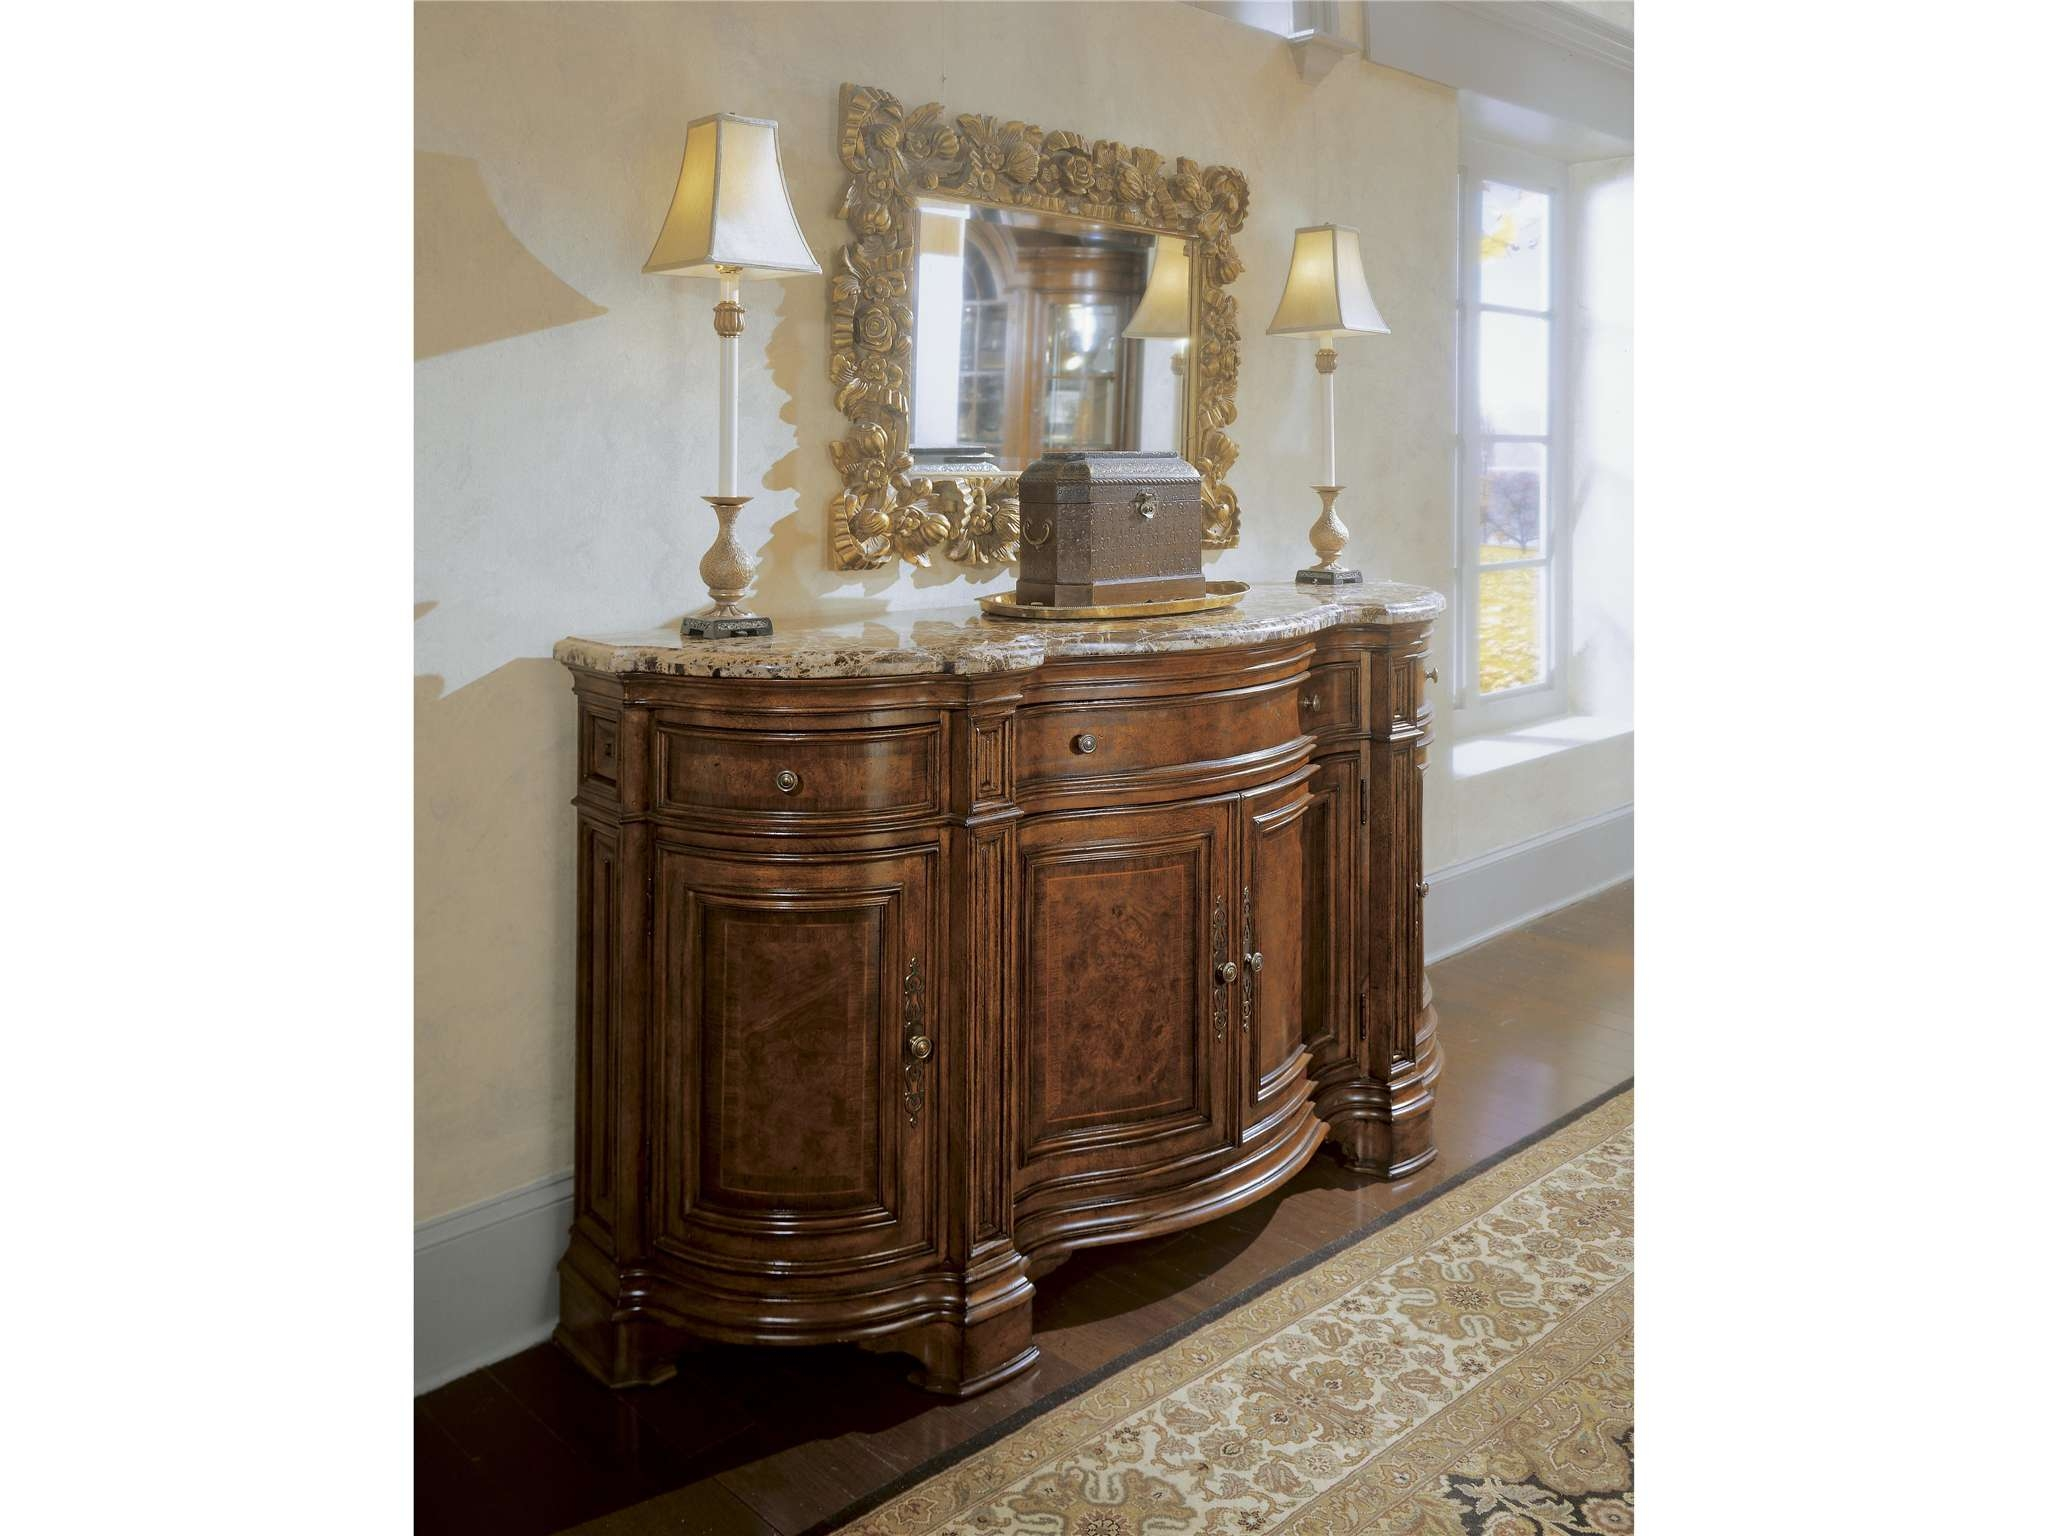 Universal Furniture | Villa Cortina | Sideboard Credenza Intended For Credenza Sideboards (View 17 of 20)